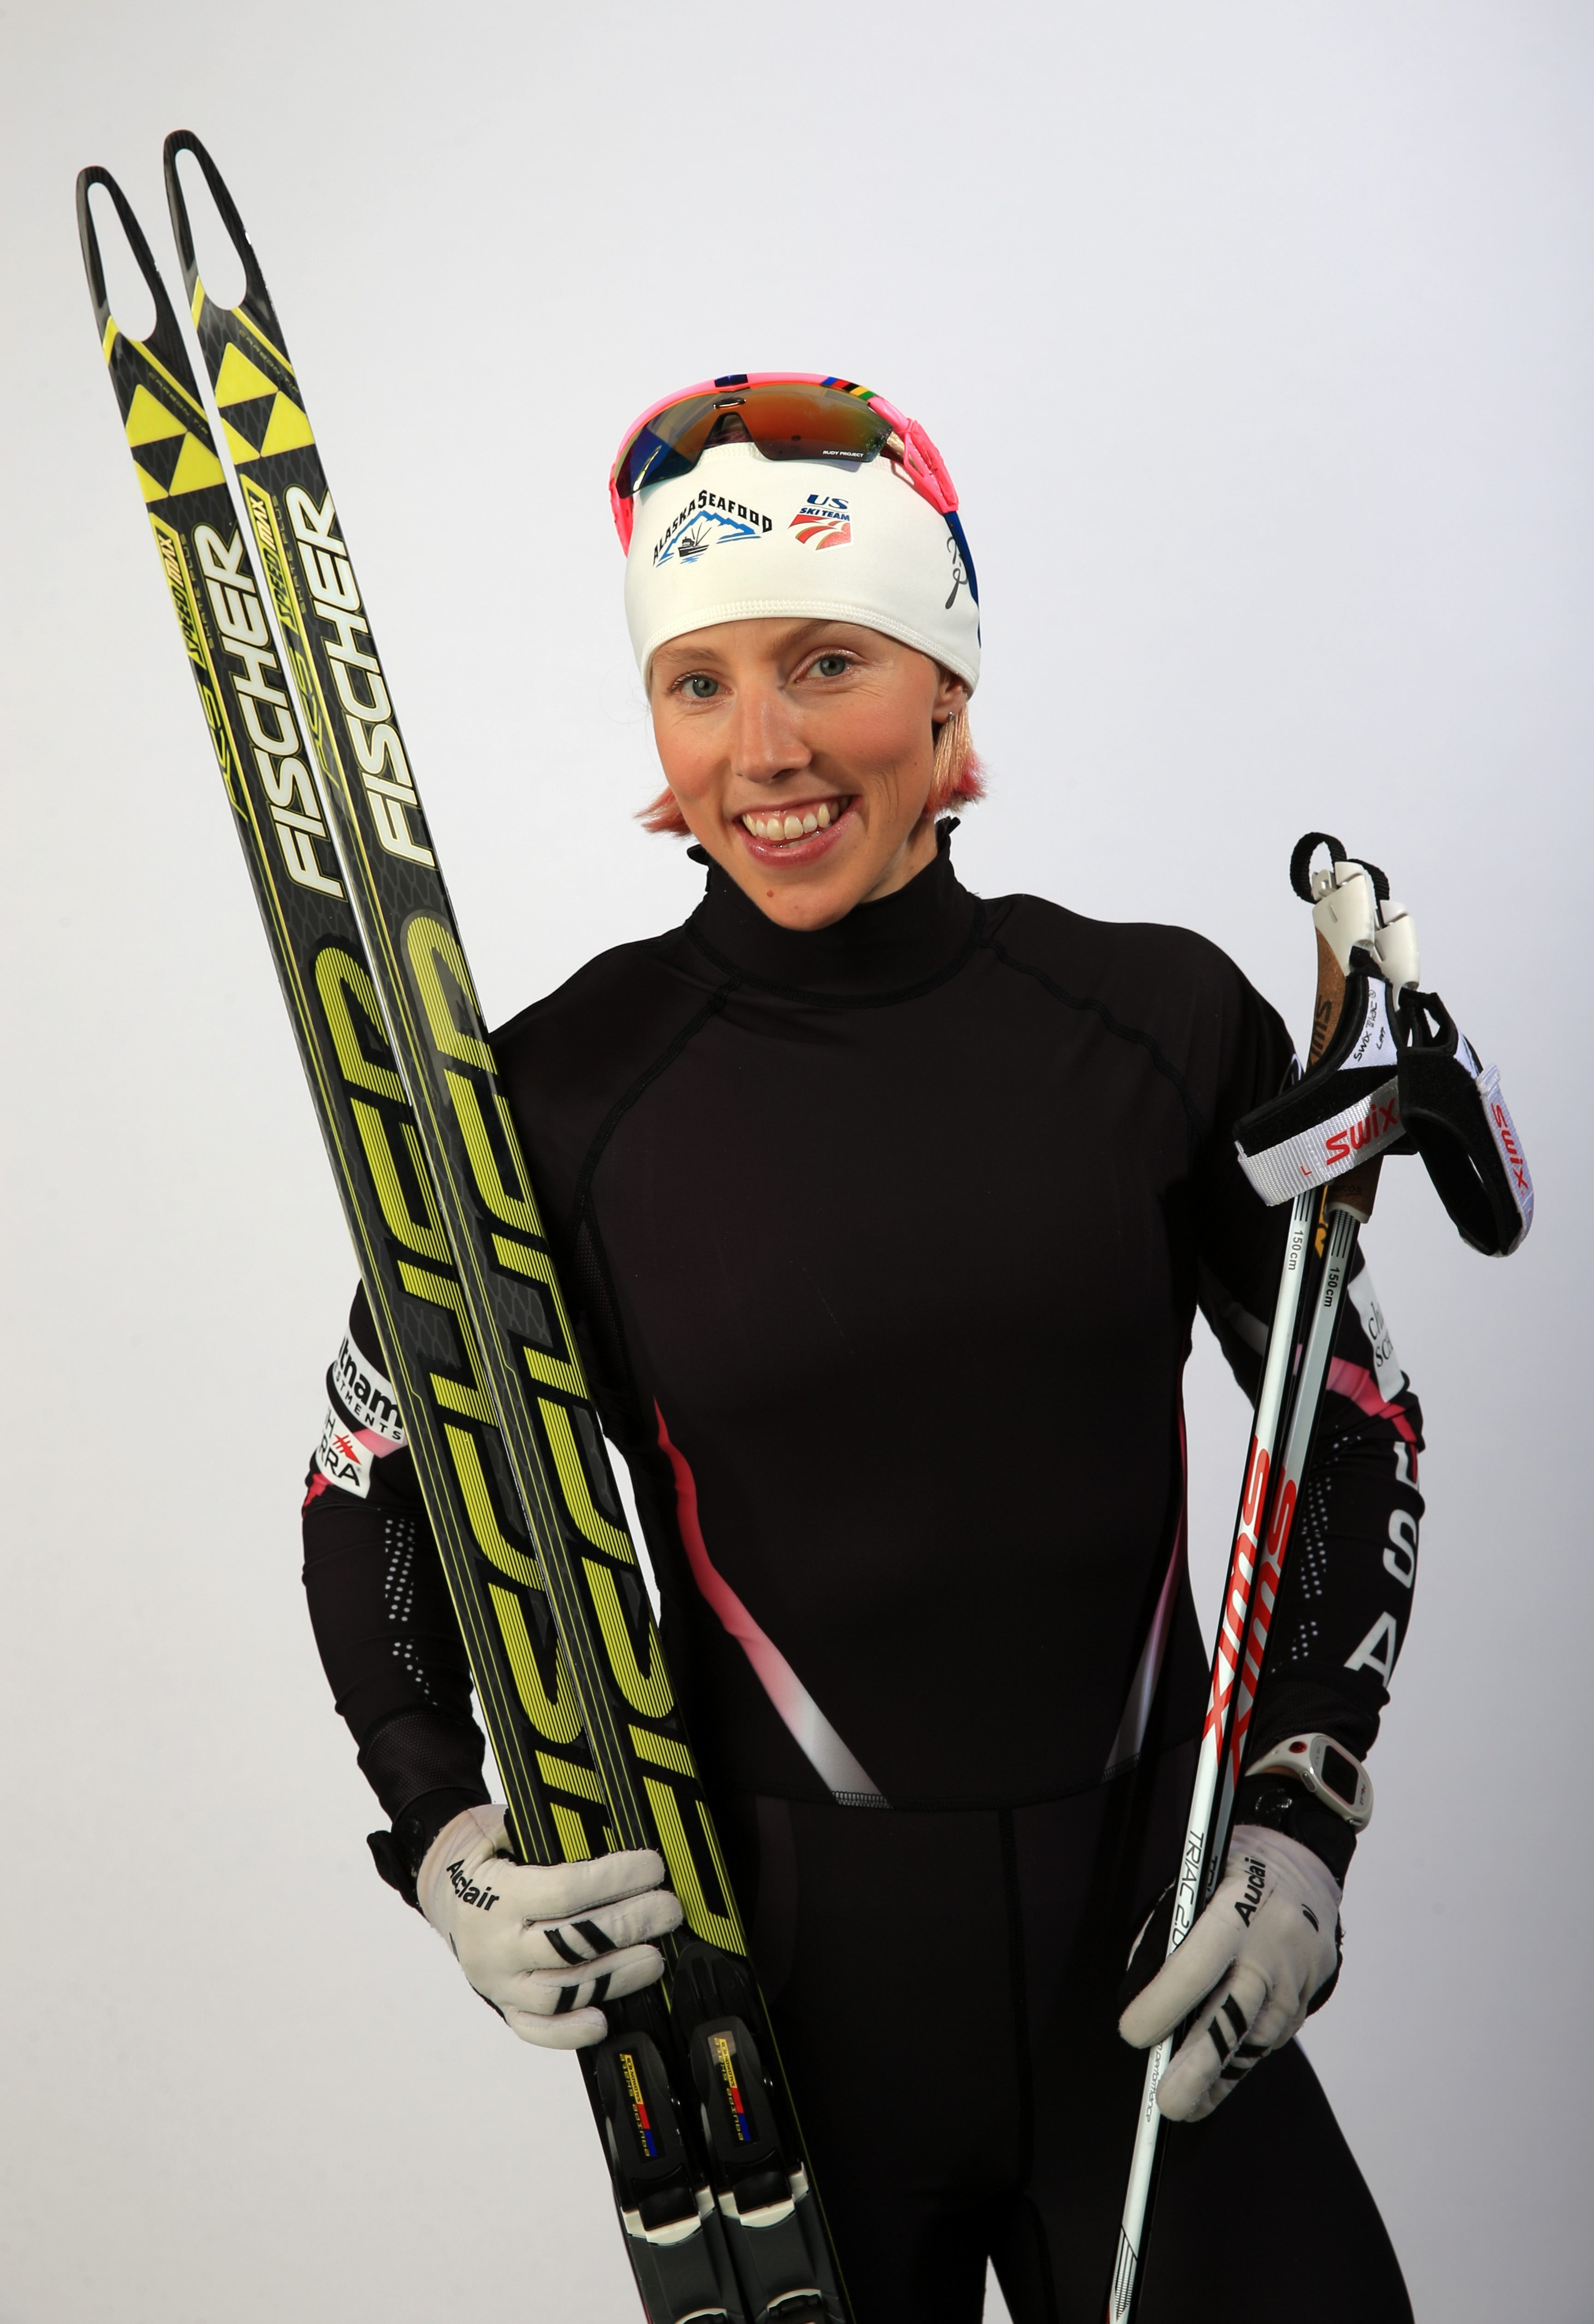 Kikkan Randall has won 17 national titles in cross country skiing and is a two-time world sprint champion.